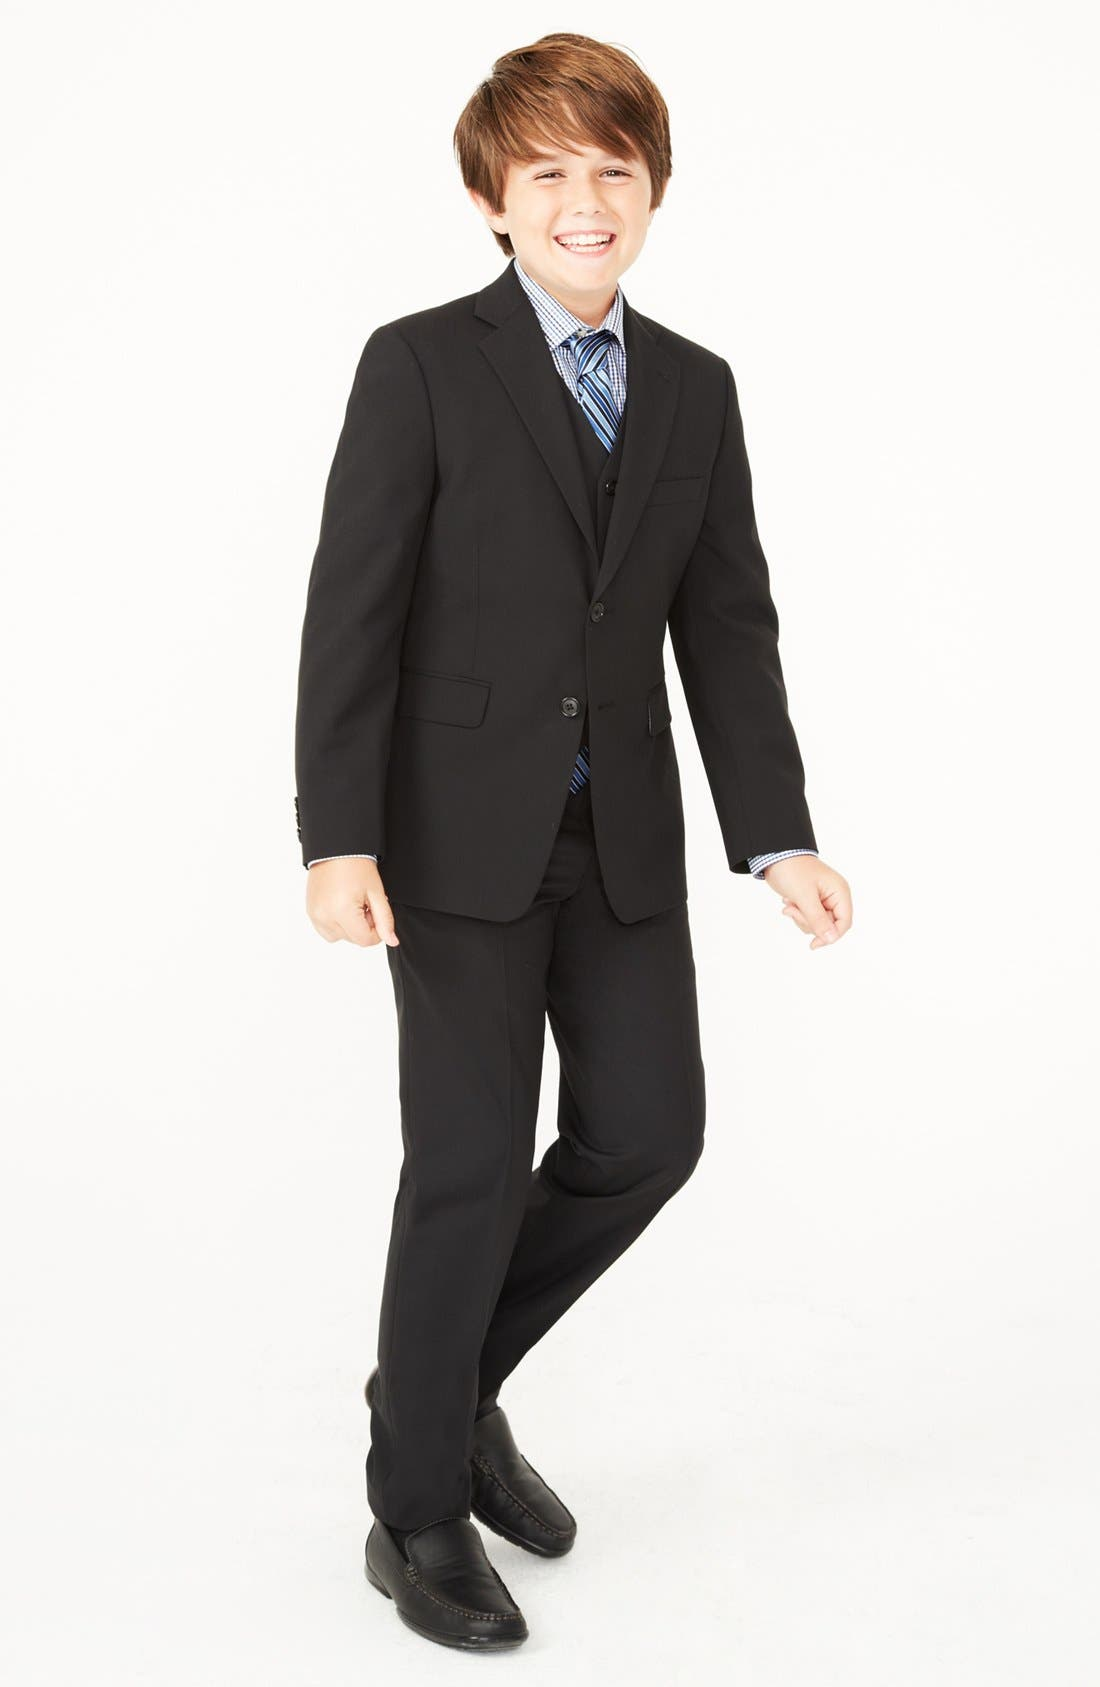 Alternate Image 1 Selected - Joseph Abboud Blazer, Dress Shirt & Dress Pants (Little Boys & Big Boys)